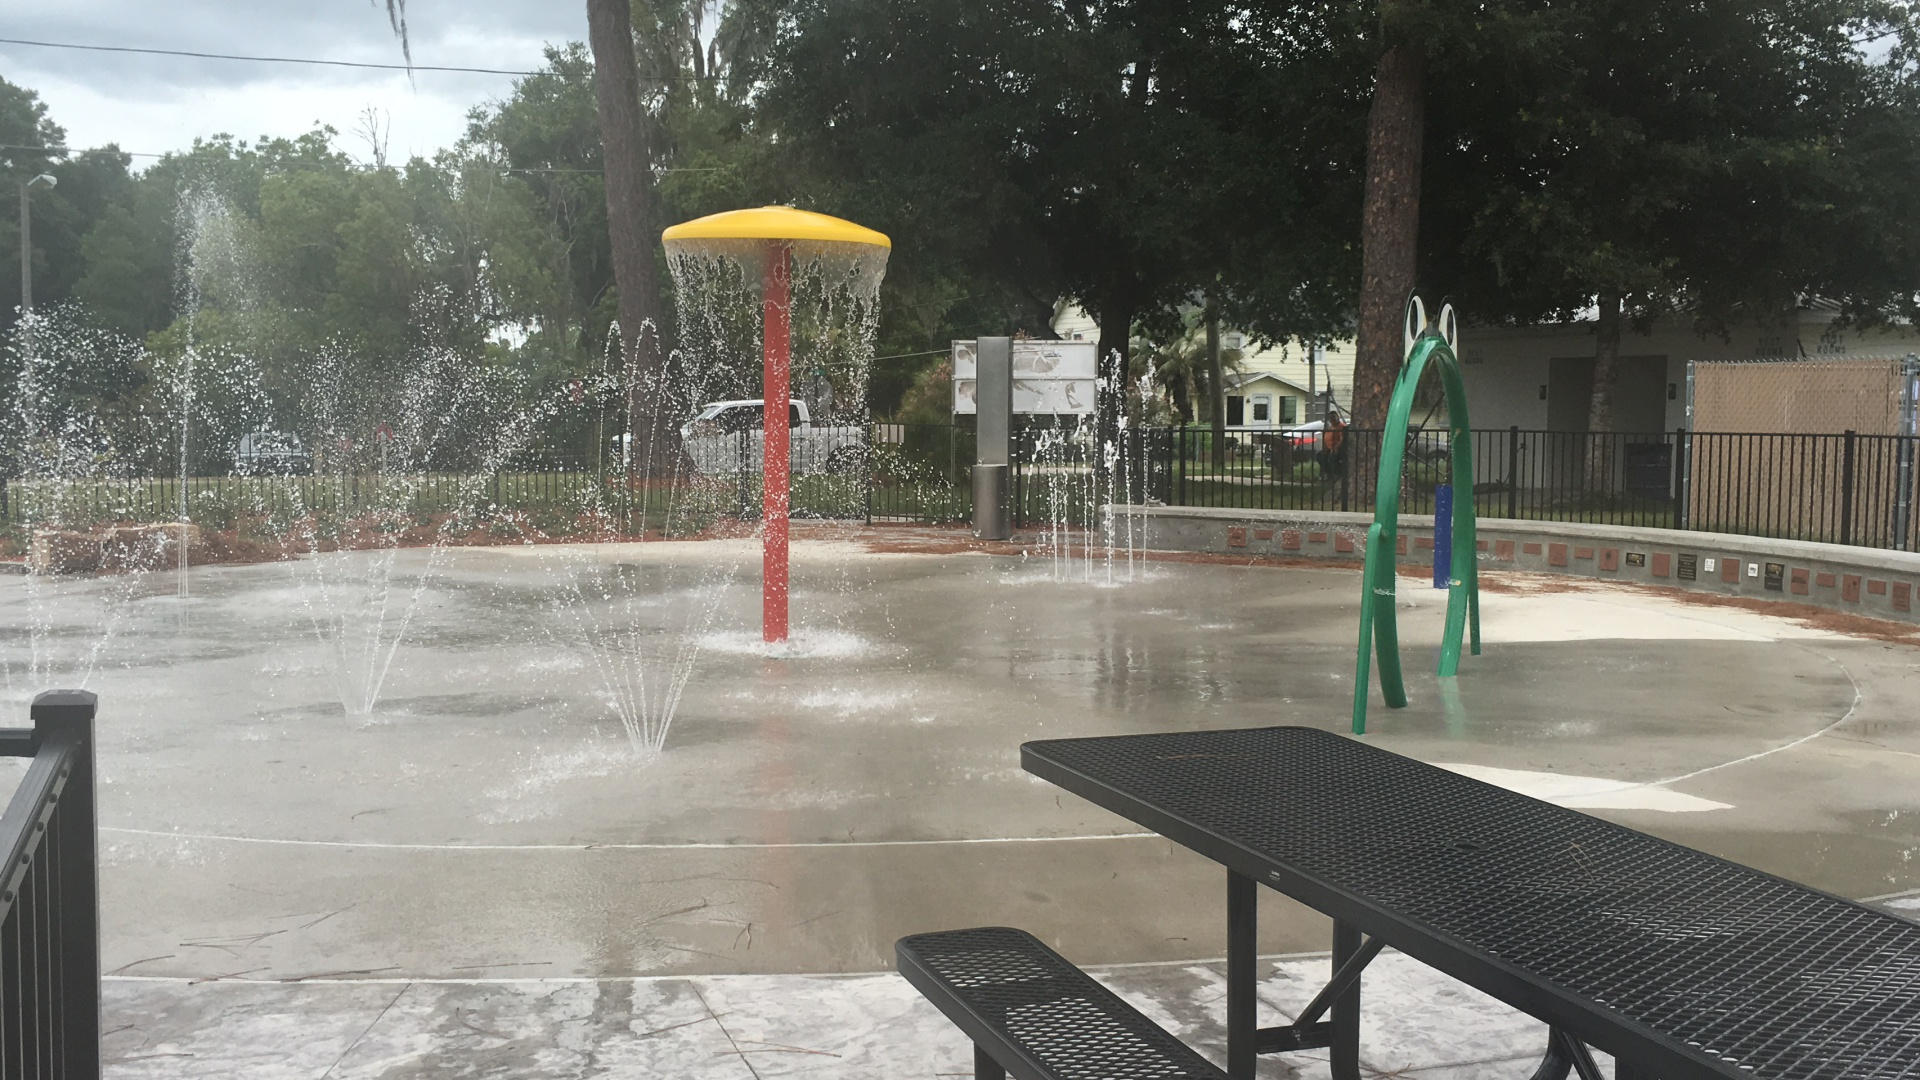 City of Belleview Splash Park